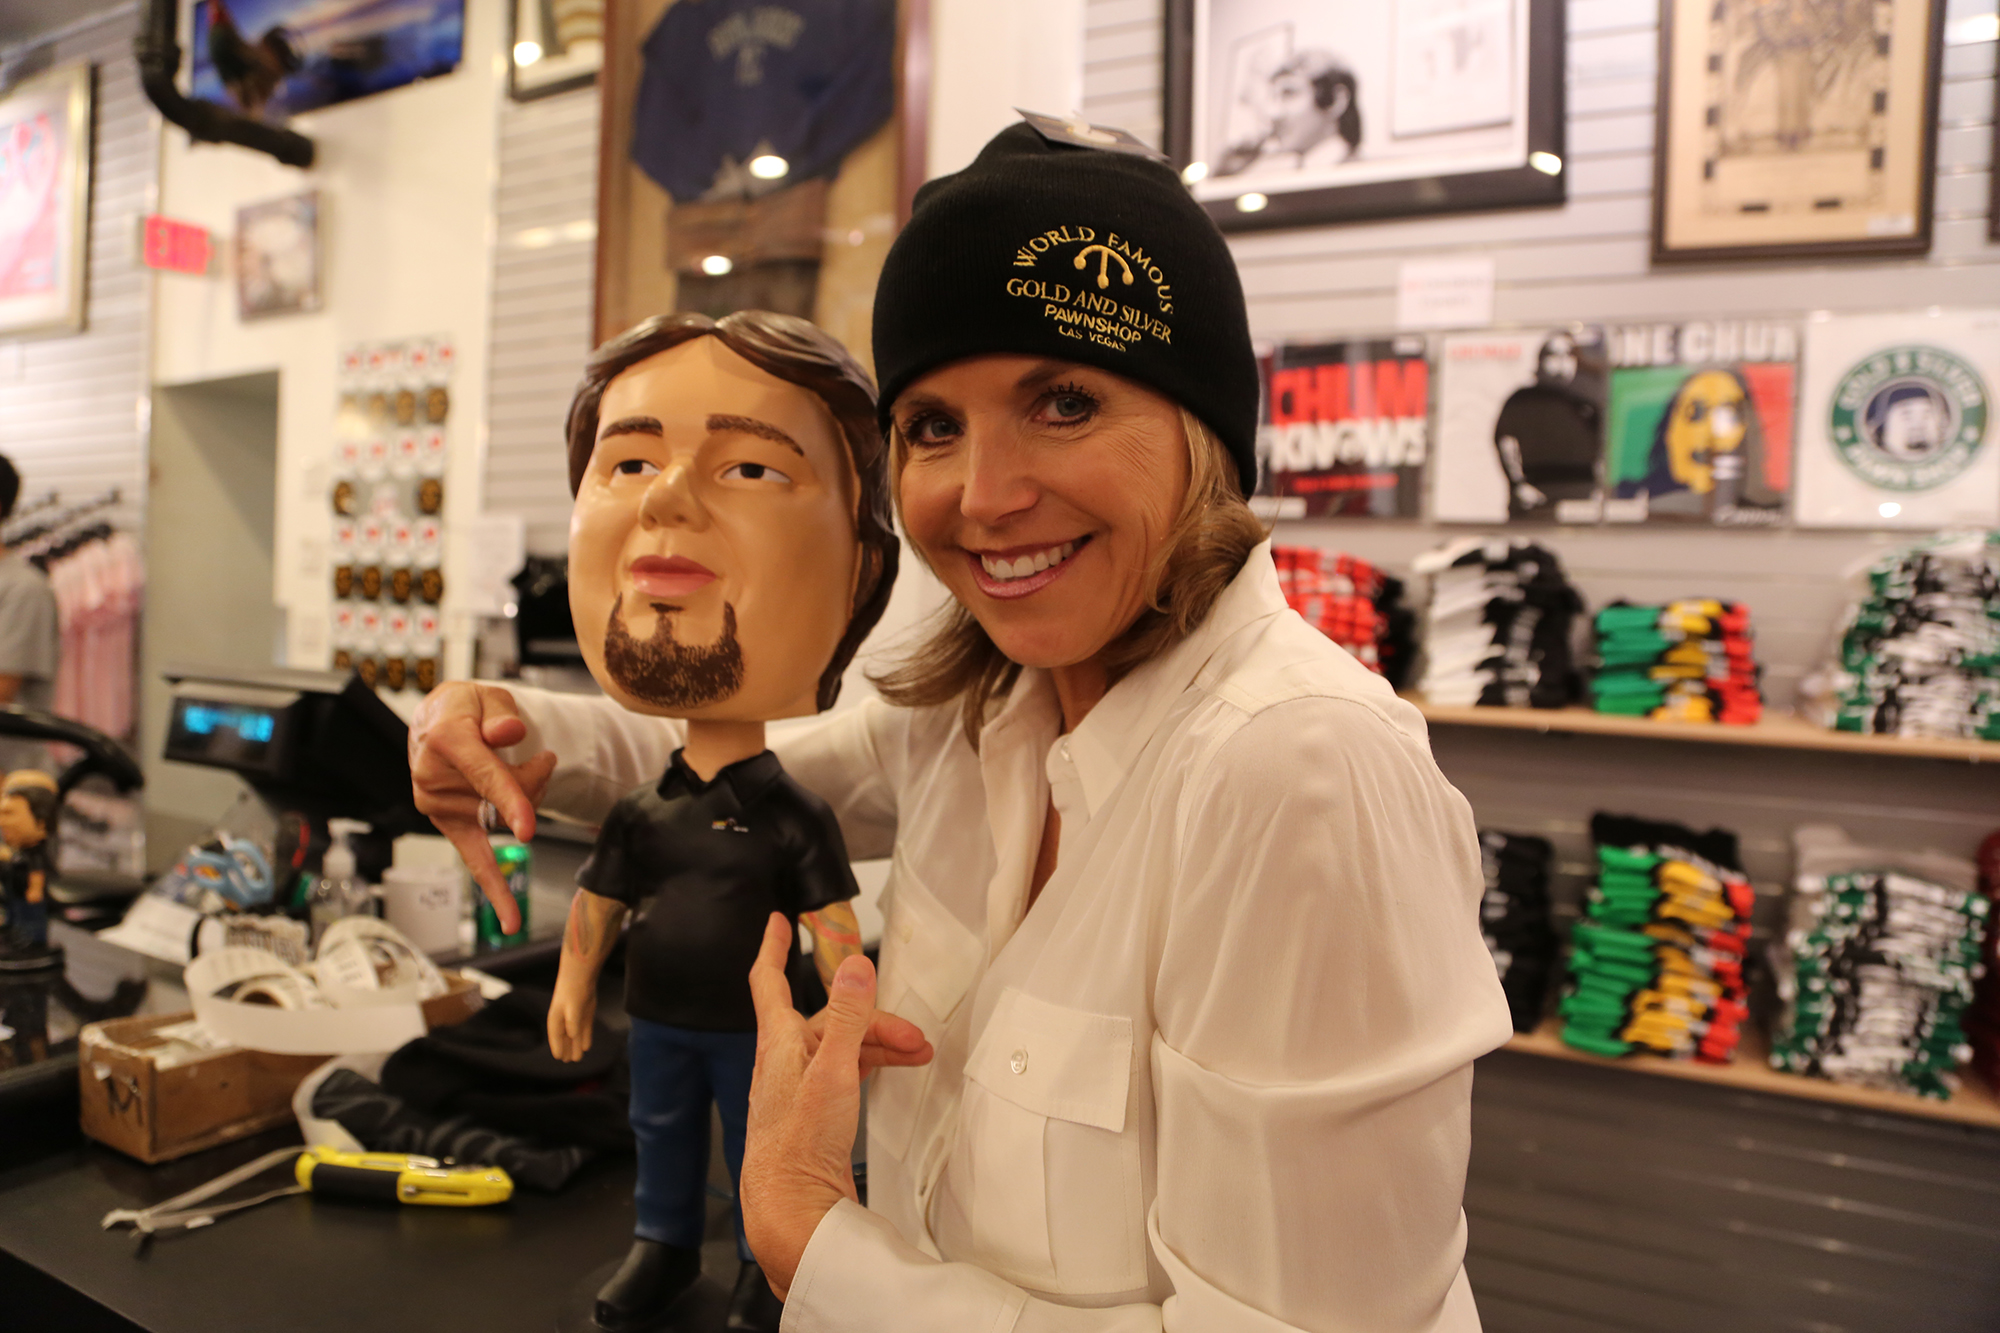 Be sure to tune in and check out Katie Couric's interview with the Pawn Stars as she also discusses her visit to the Gold & Silver Pawn Shop in Las Vegas!